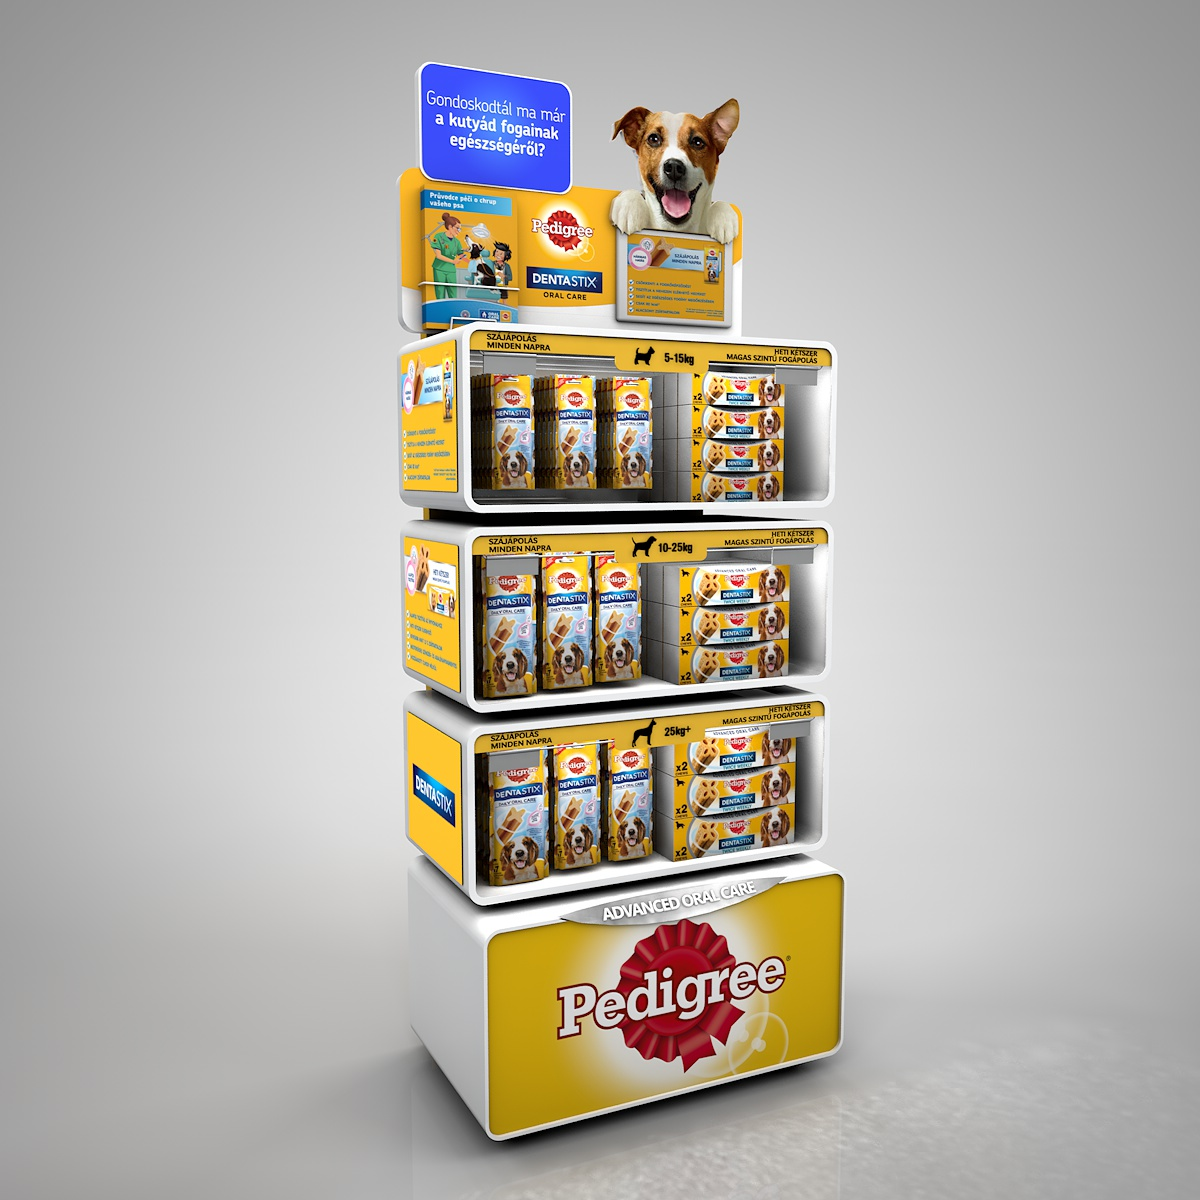 Pedigree LED display